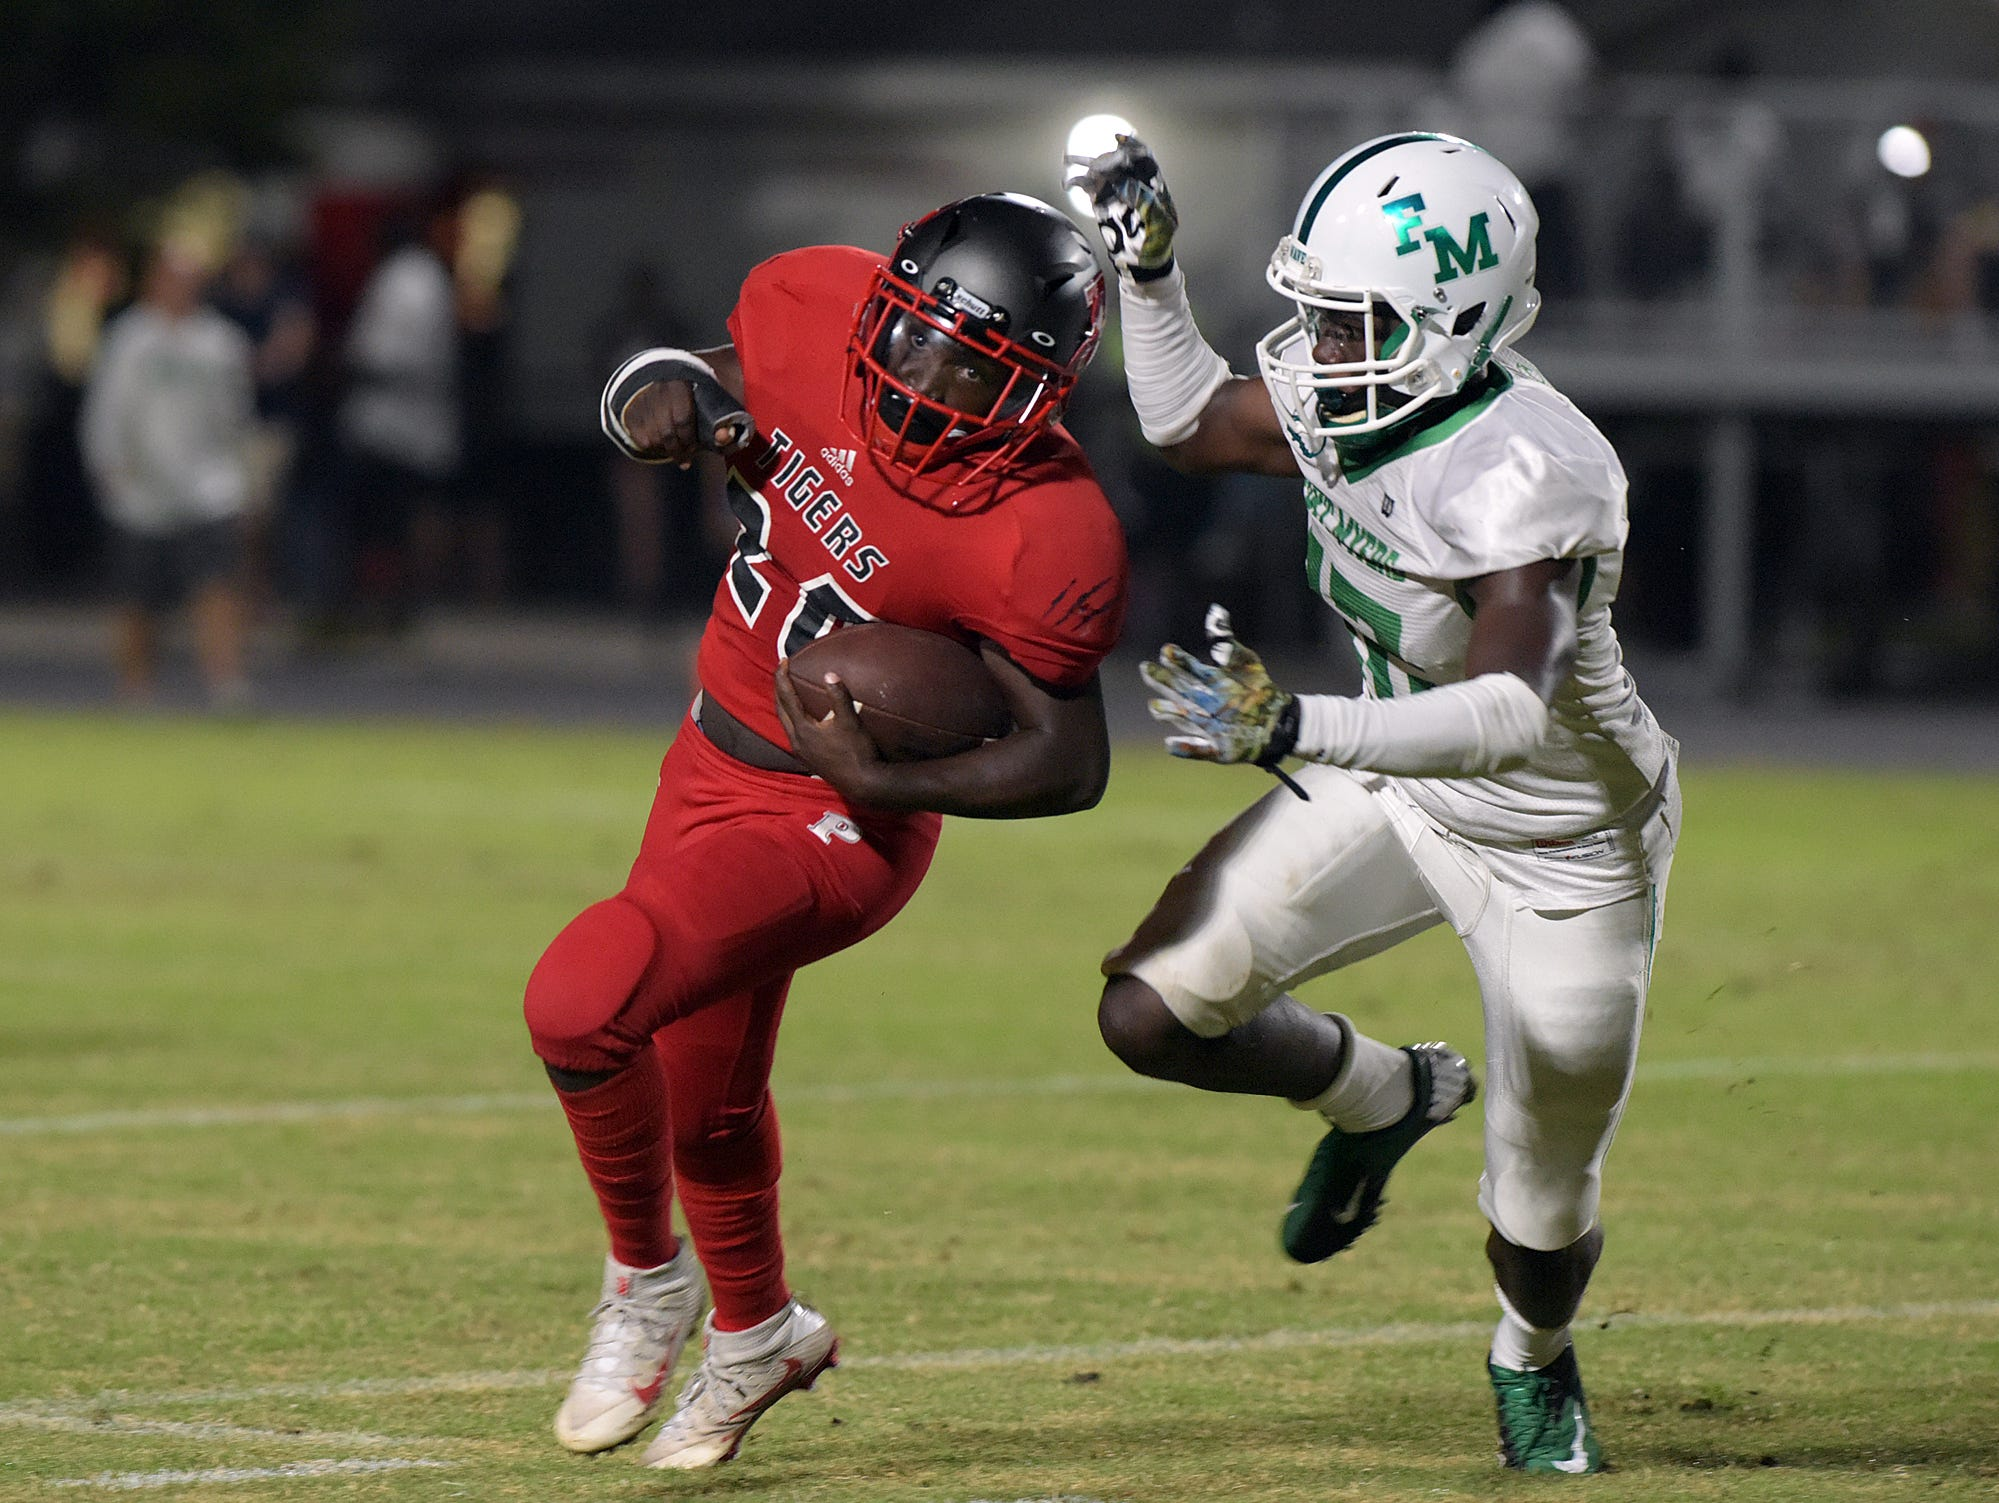 Palmetto's Herman White IV runs the ball as Fort Myers' J.D. Thomas closes in for the tackle during Friday night's rain-delayed game against Fort Myers at Palmetto.